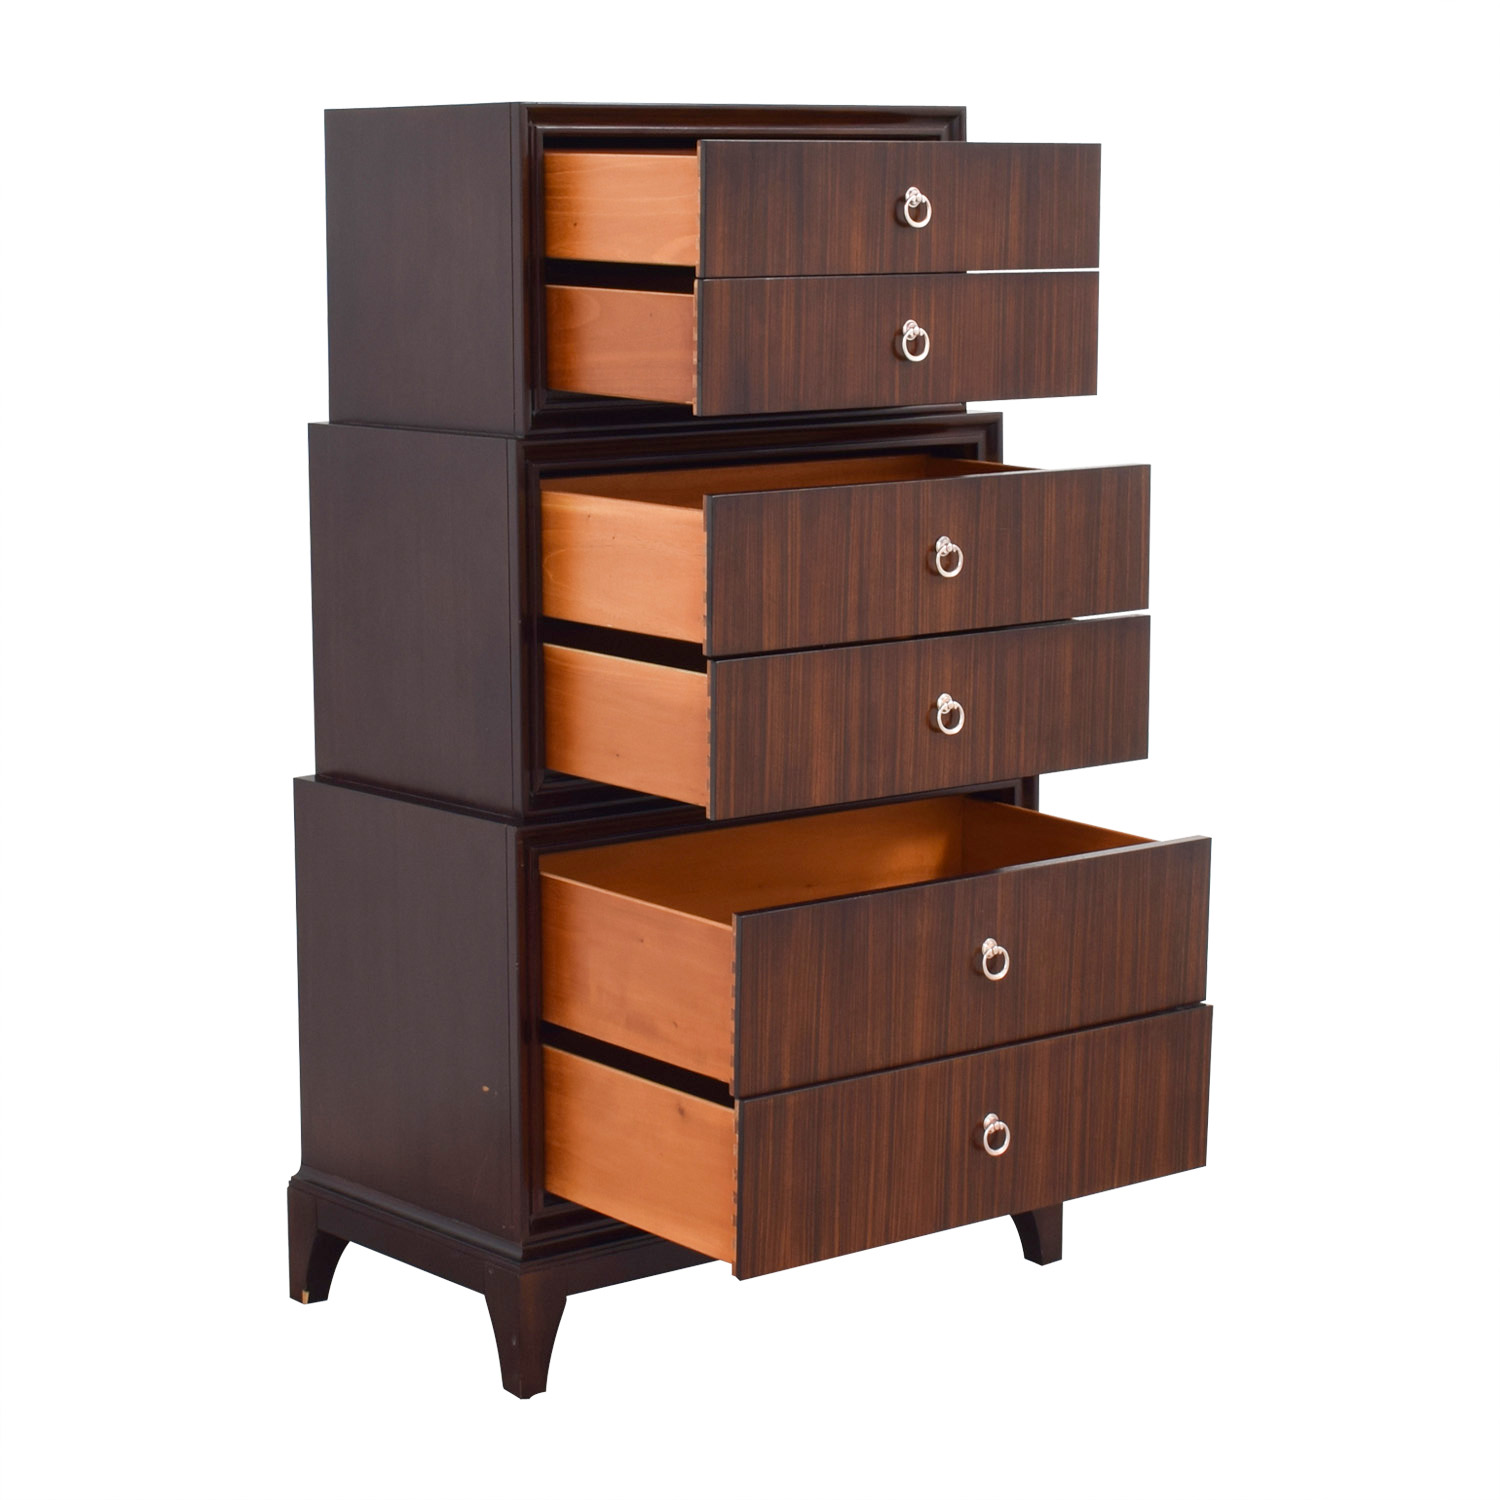 68 off ethan allen ethan allen flynn chest storage for Ethan allen furniture